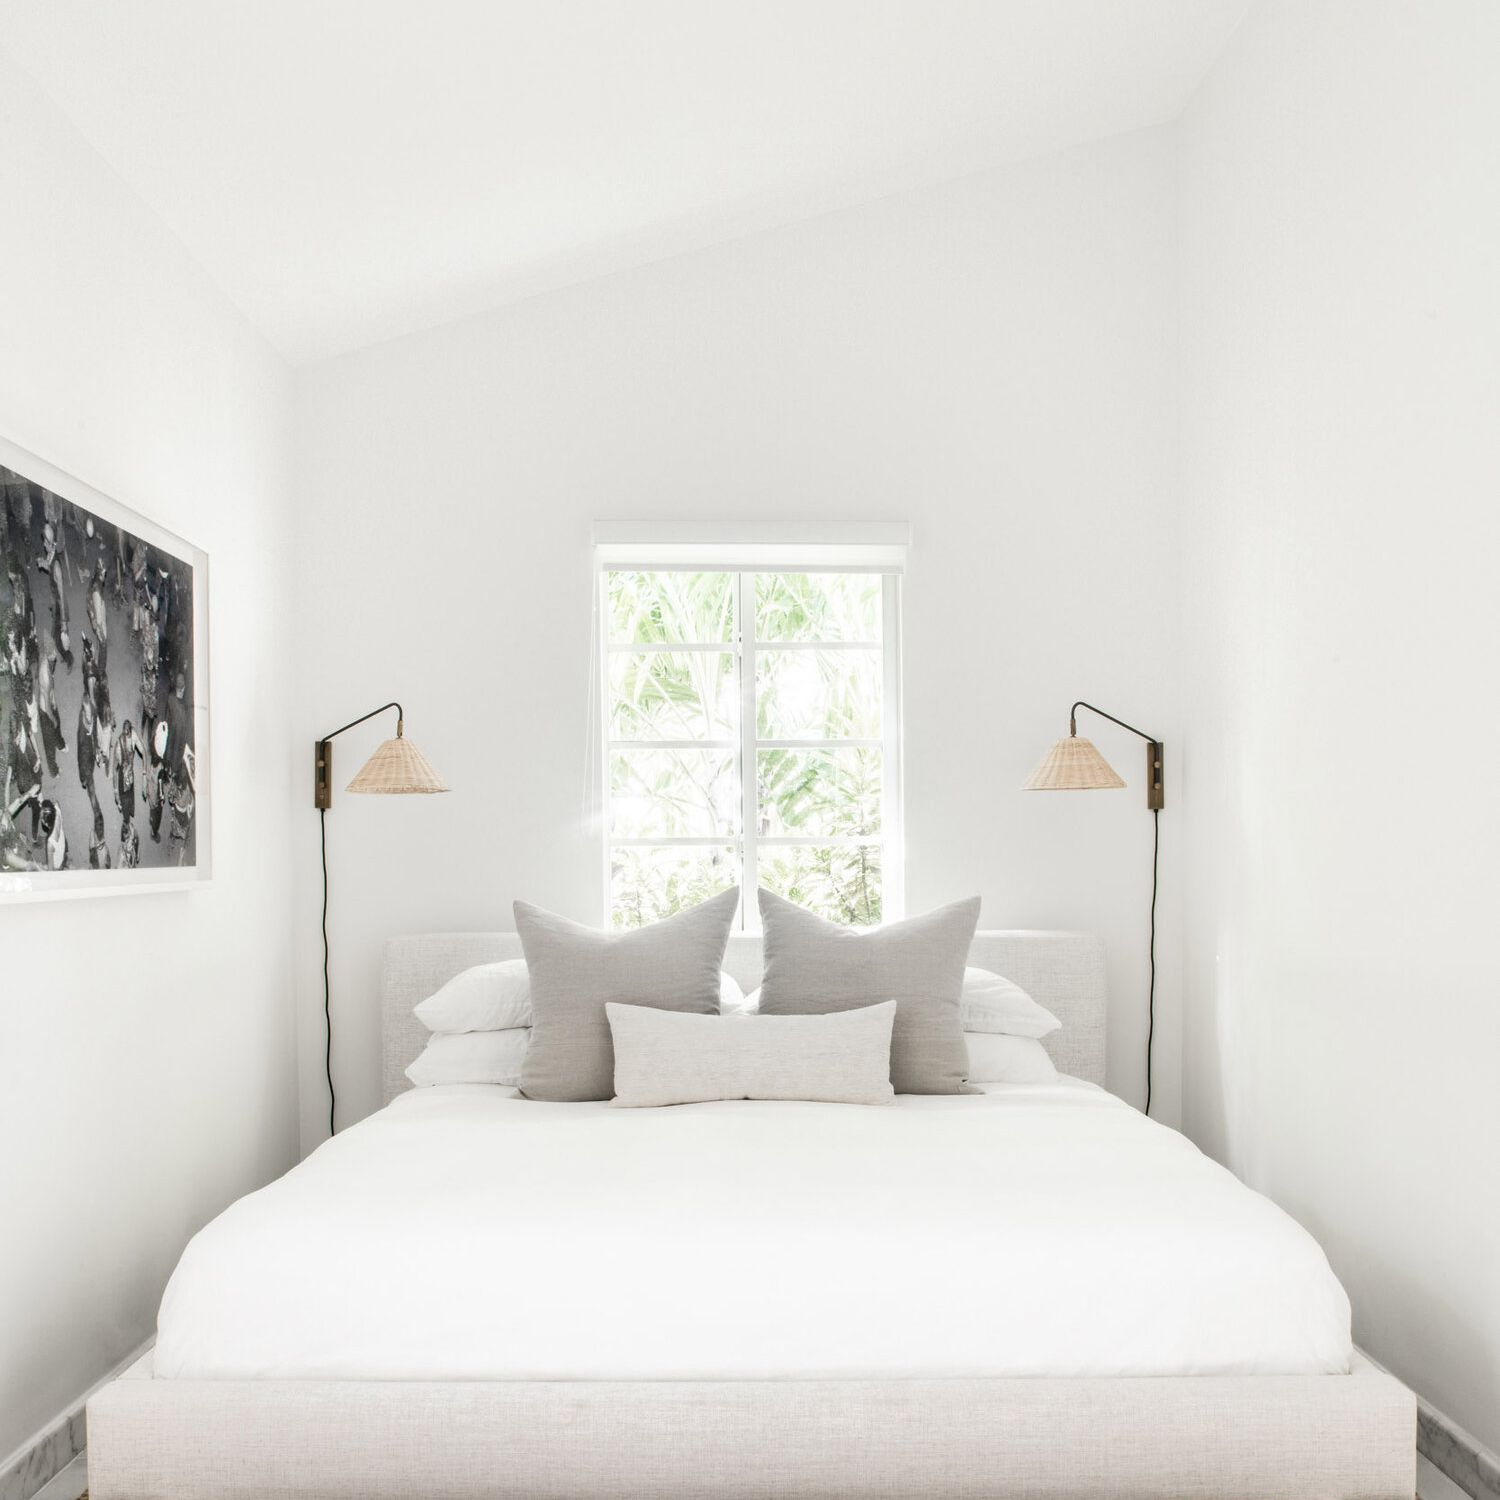 A minimalist bedroom with two woven sconces